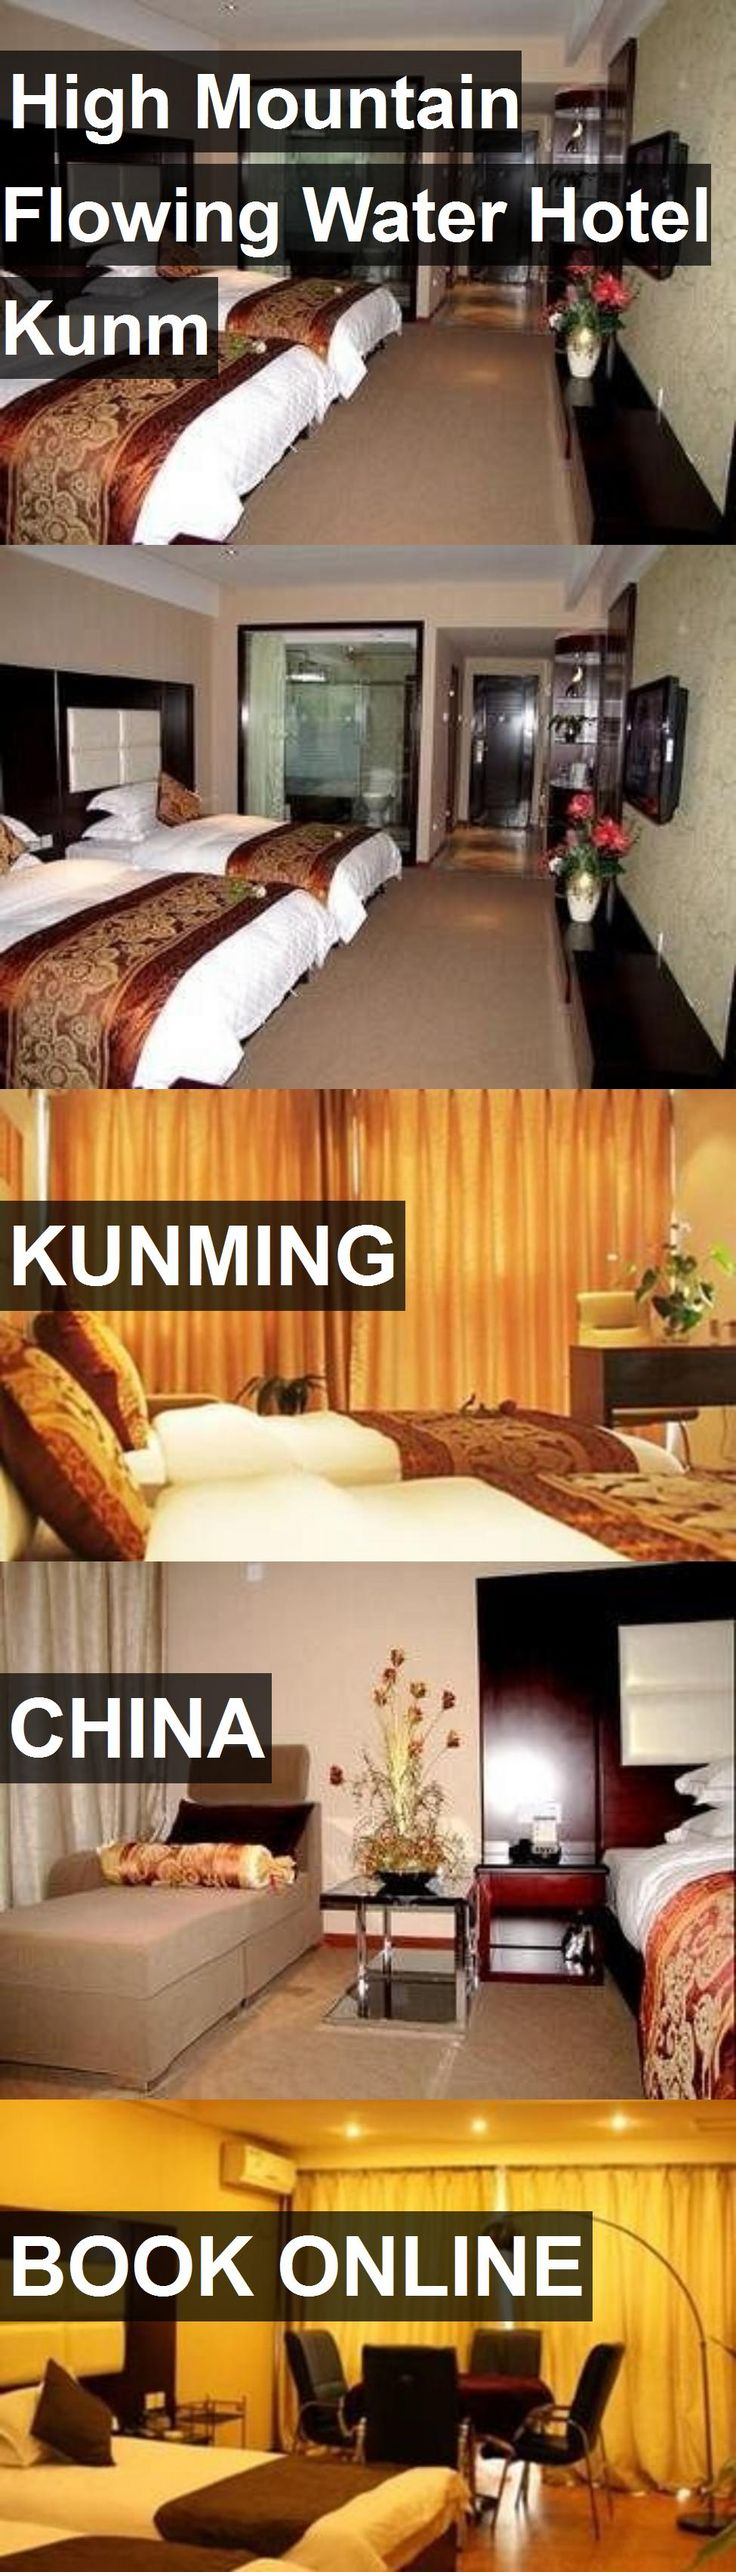 Hotel High Mountain Flowing Water Hotel Kunm in Kunming, China. For more information, photos, reviews and best prices please follow the link. #China #Kunming #HighMountainFlowingWaterHotelKunm #hotel #travel #vacation